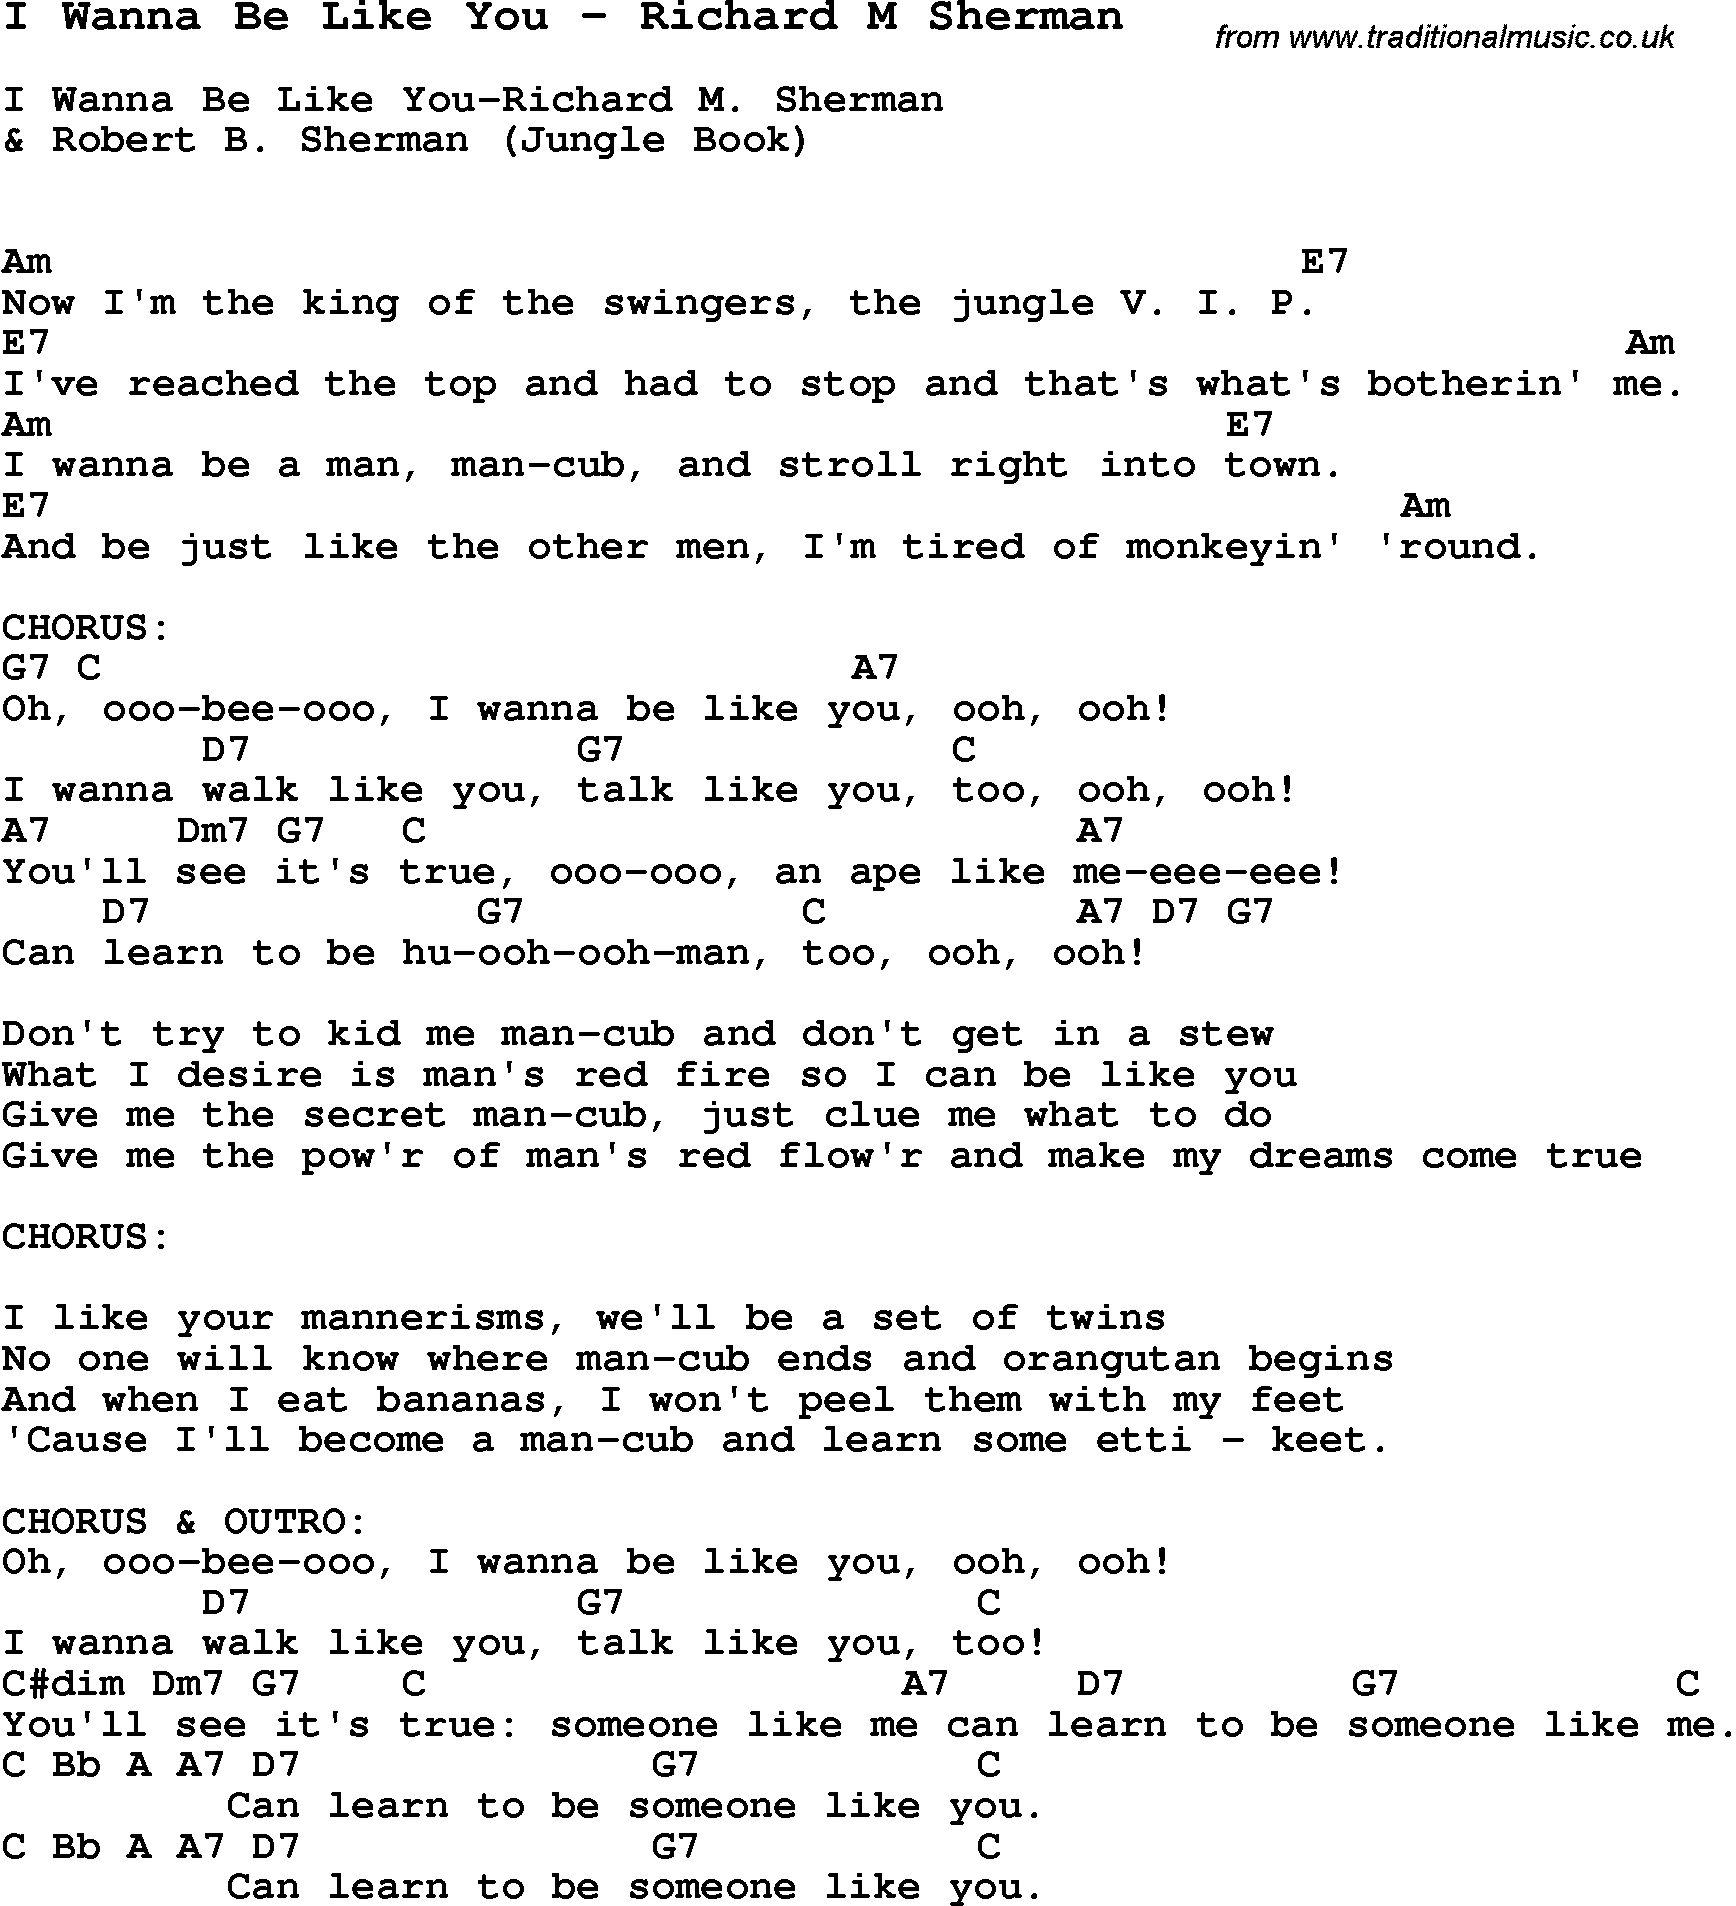 Song I Wanna Be Like You By Richard M Sherman Song Lyric For Vocal